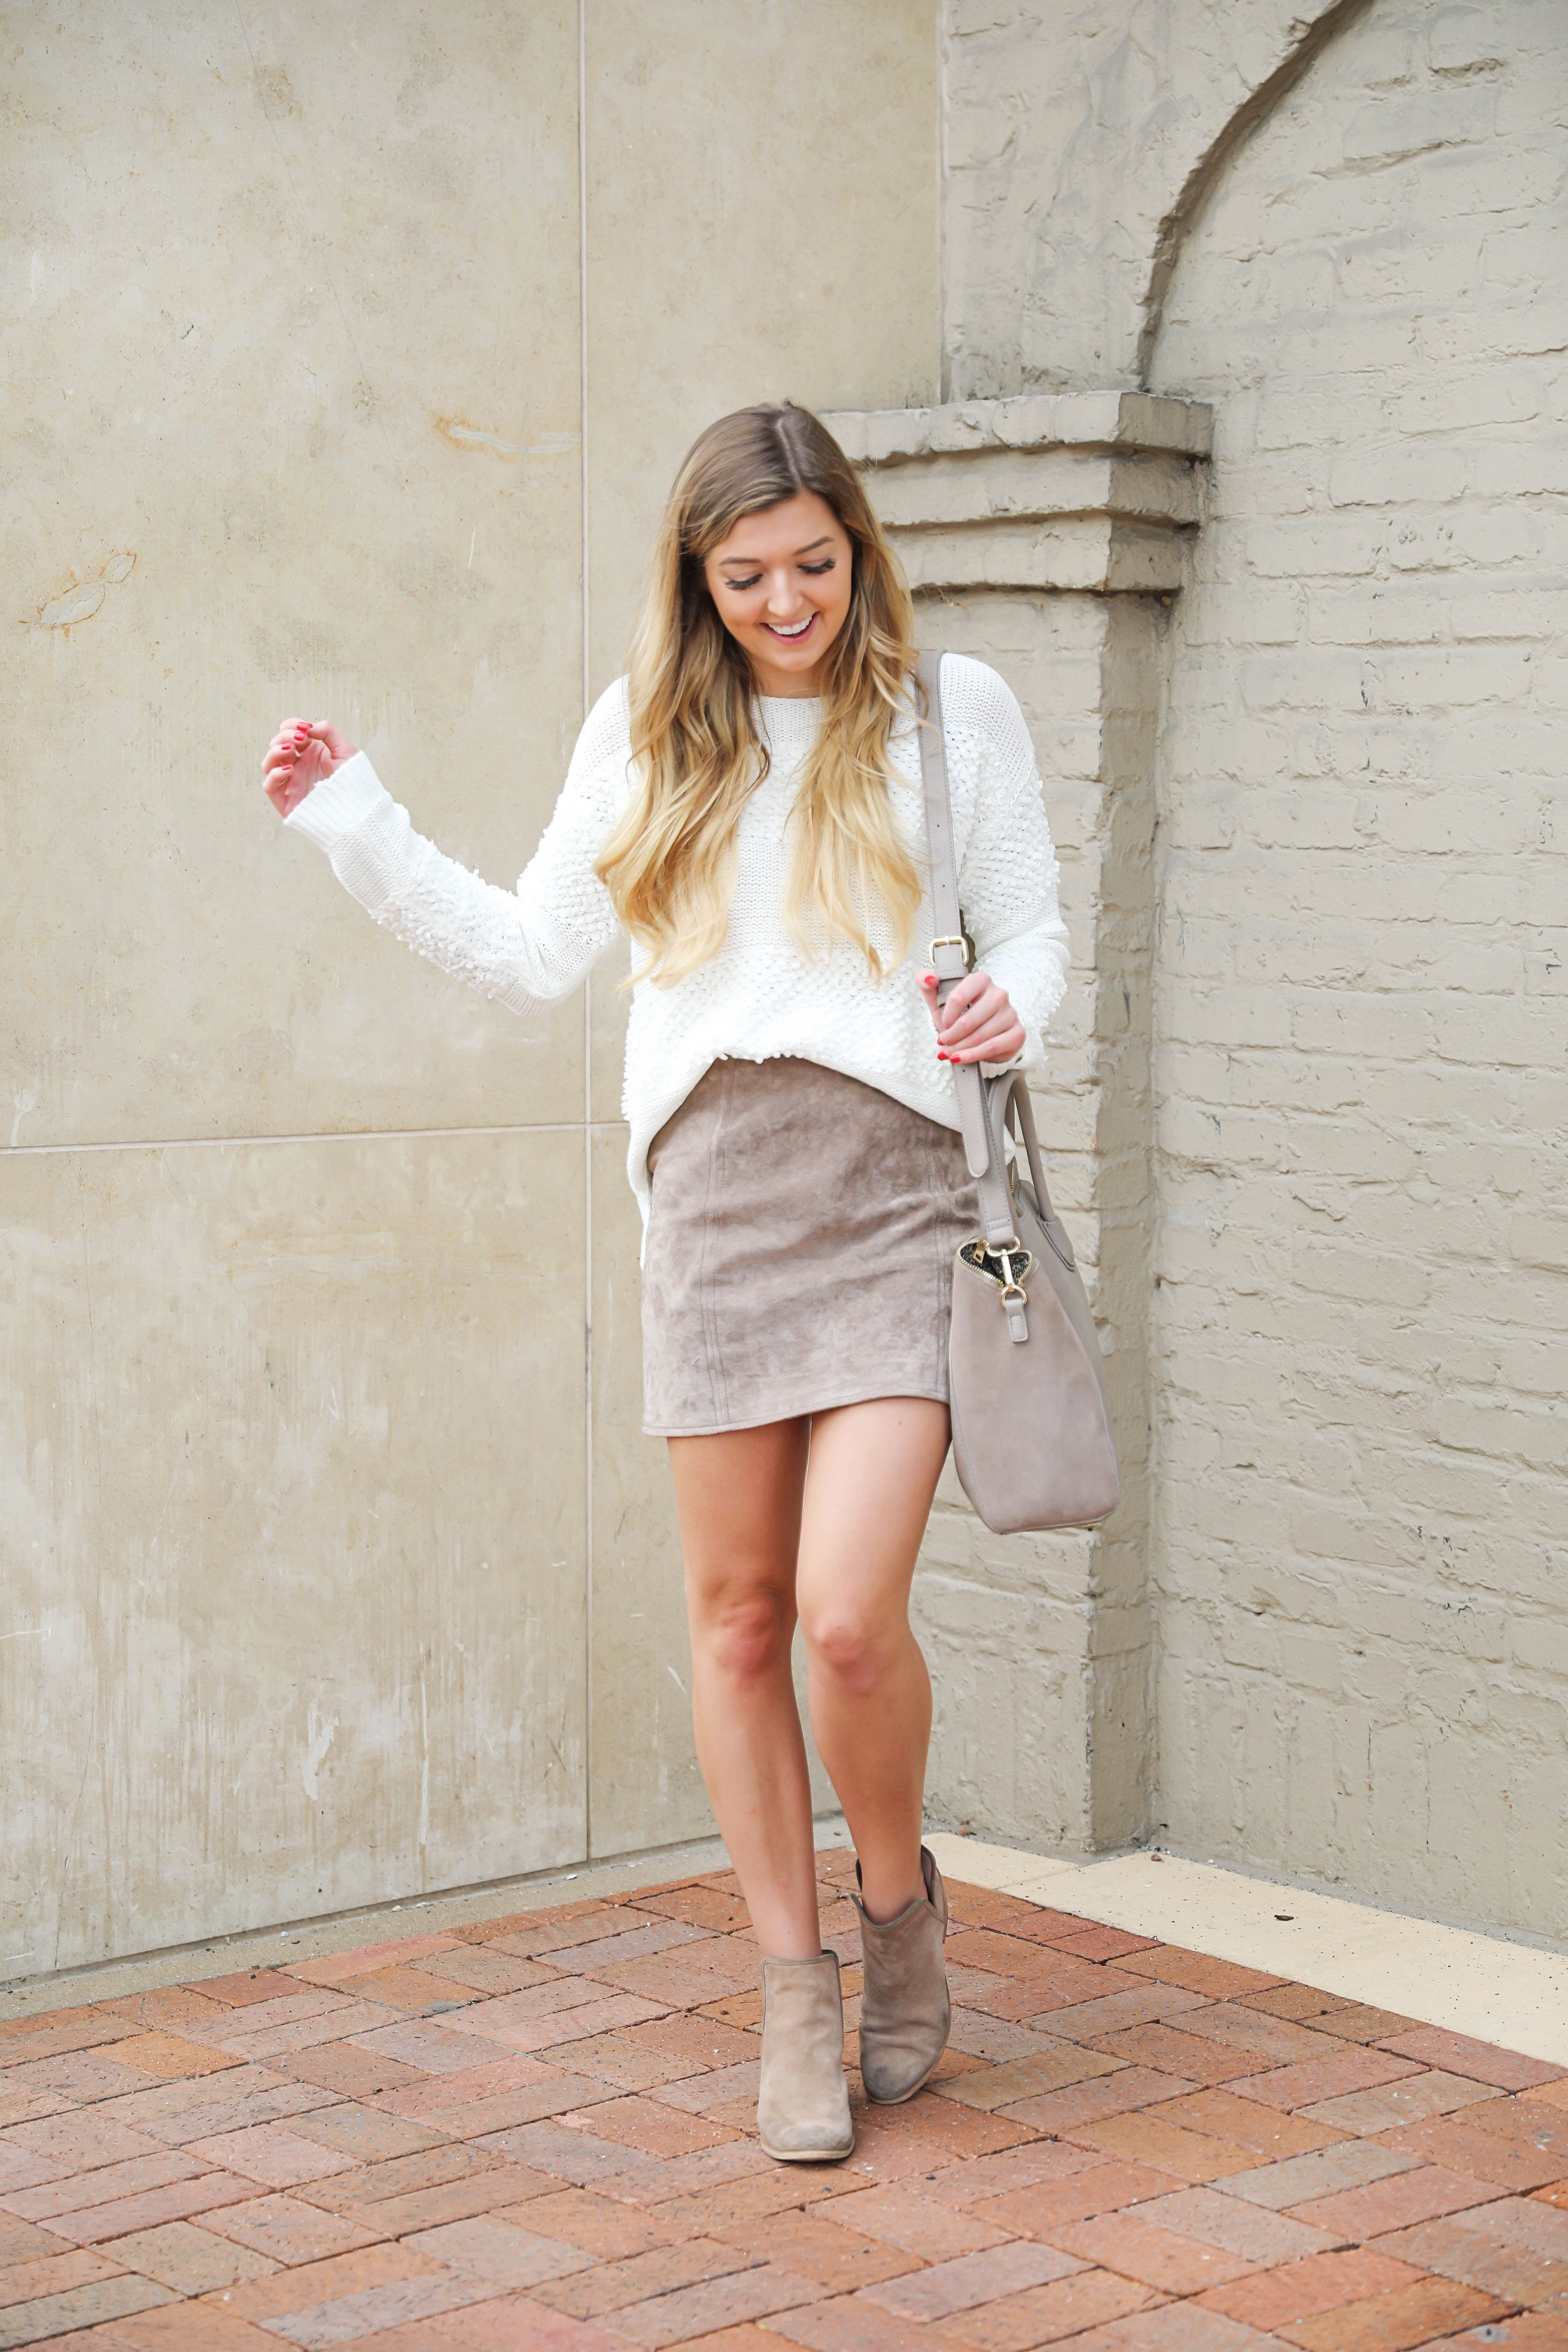 Suede skirt paired with a cream texturized sweater and tan booties! The cutest fall outfit idea! I love autumn outfit inspiration! Details on fashion blog daily dose of charm by lauren lindmark